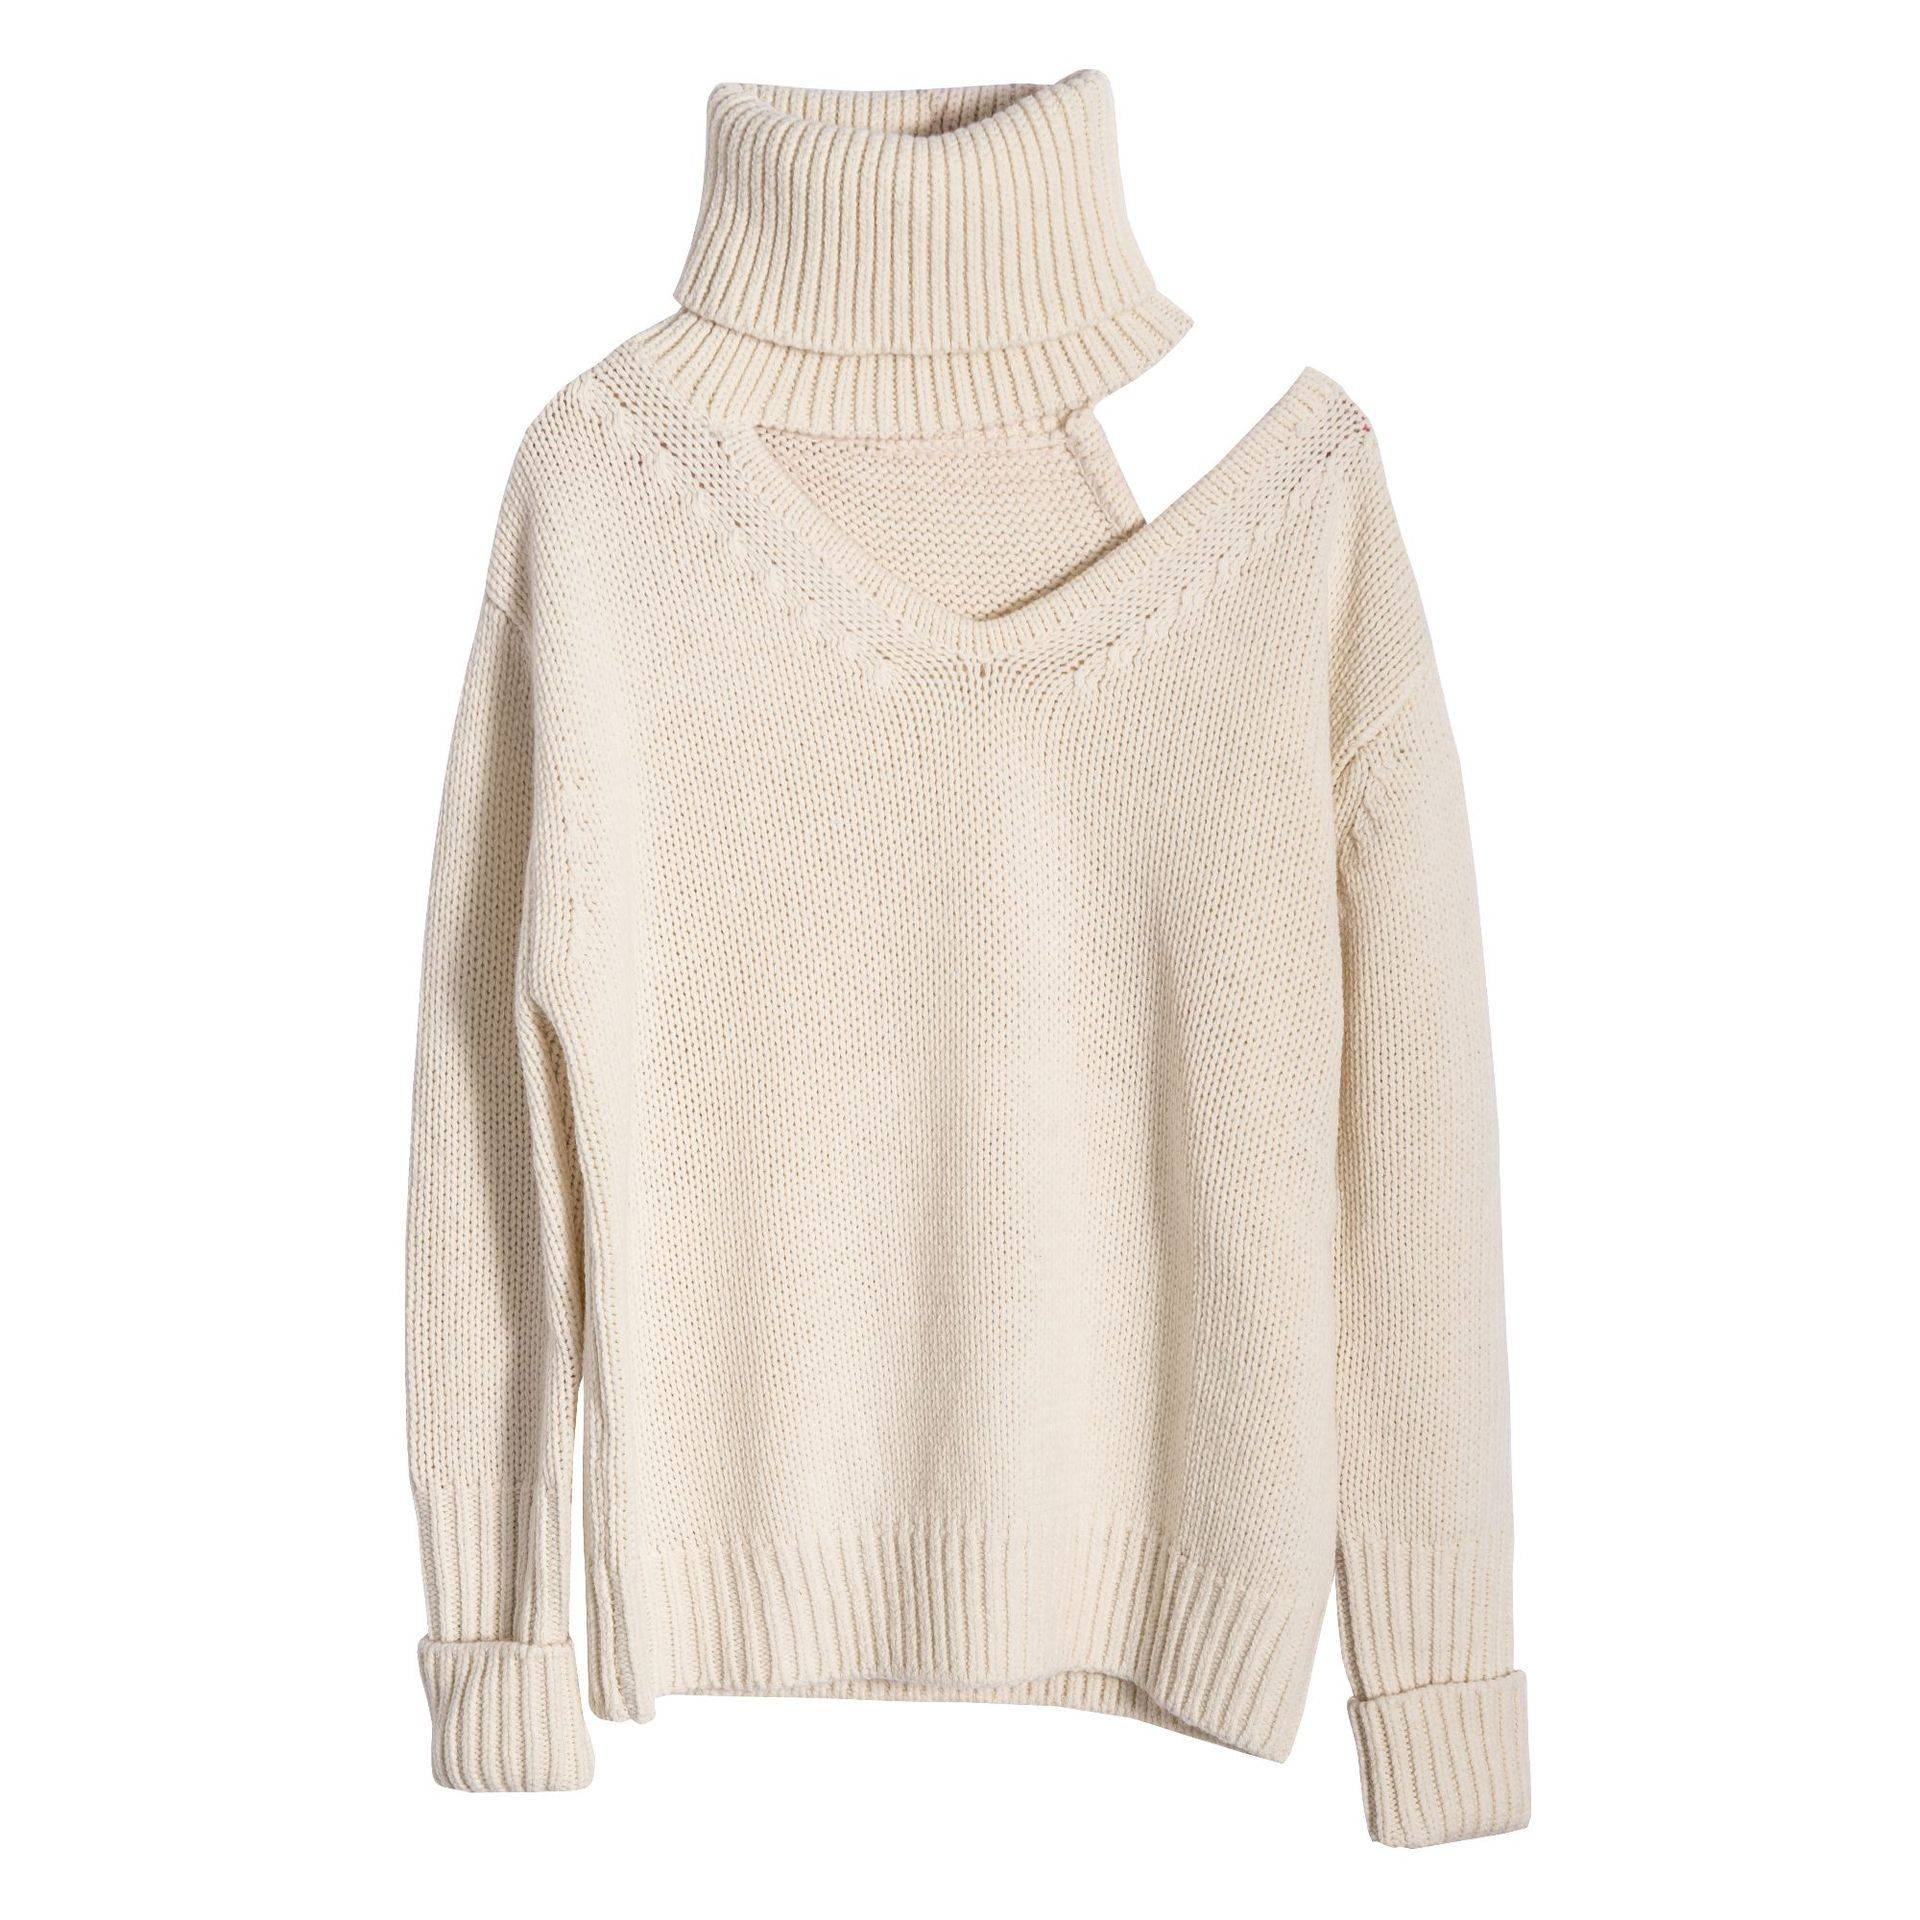 Cardigan sweater female 2020 autumn winter new European half-high collar loose cashmere sweater female bottoming shirt Featured Image